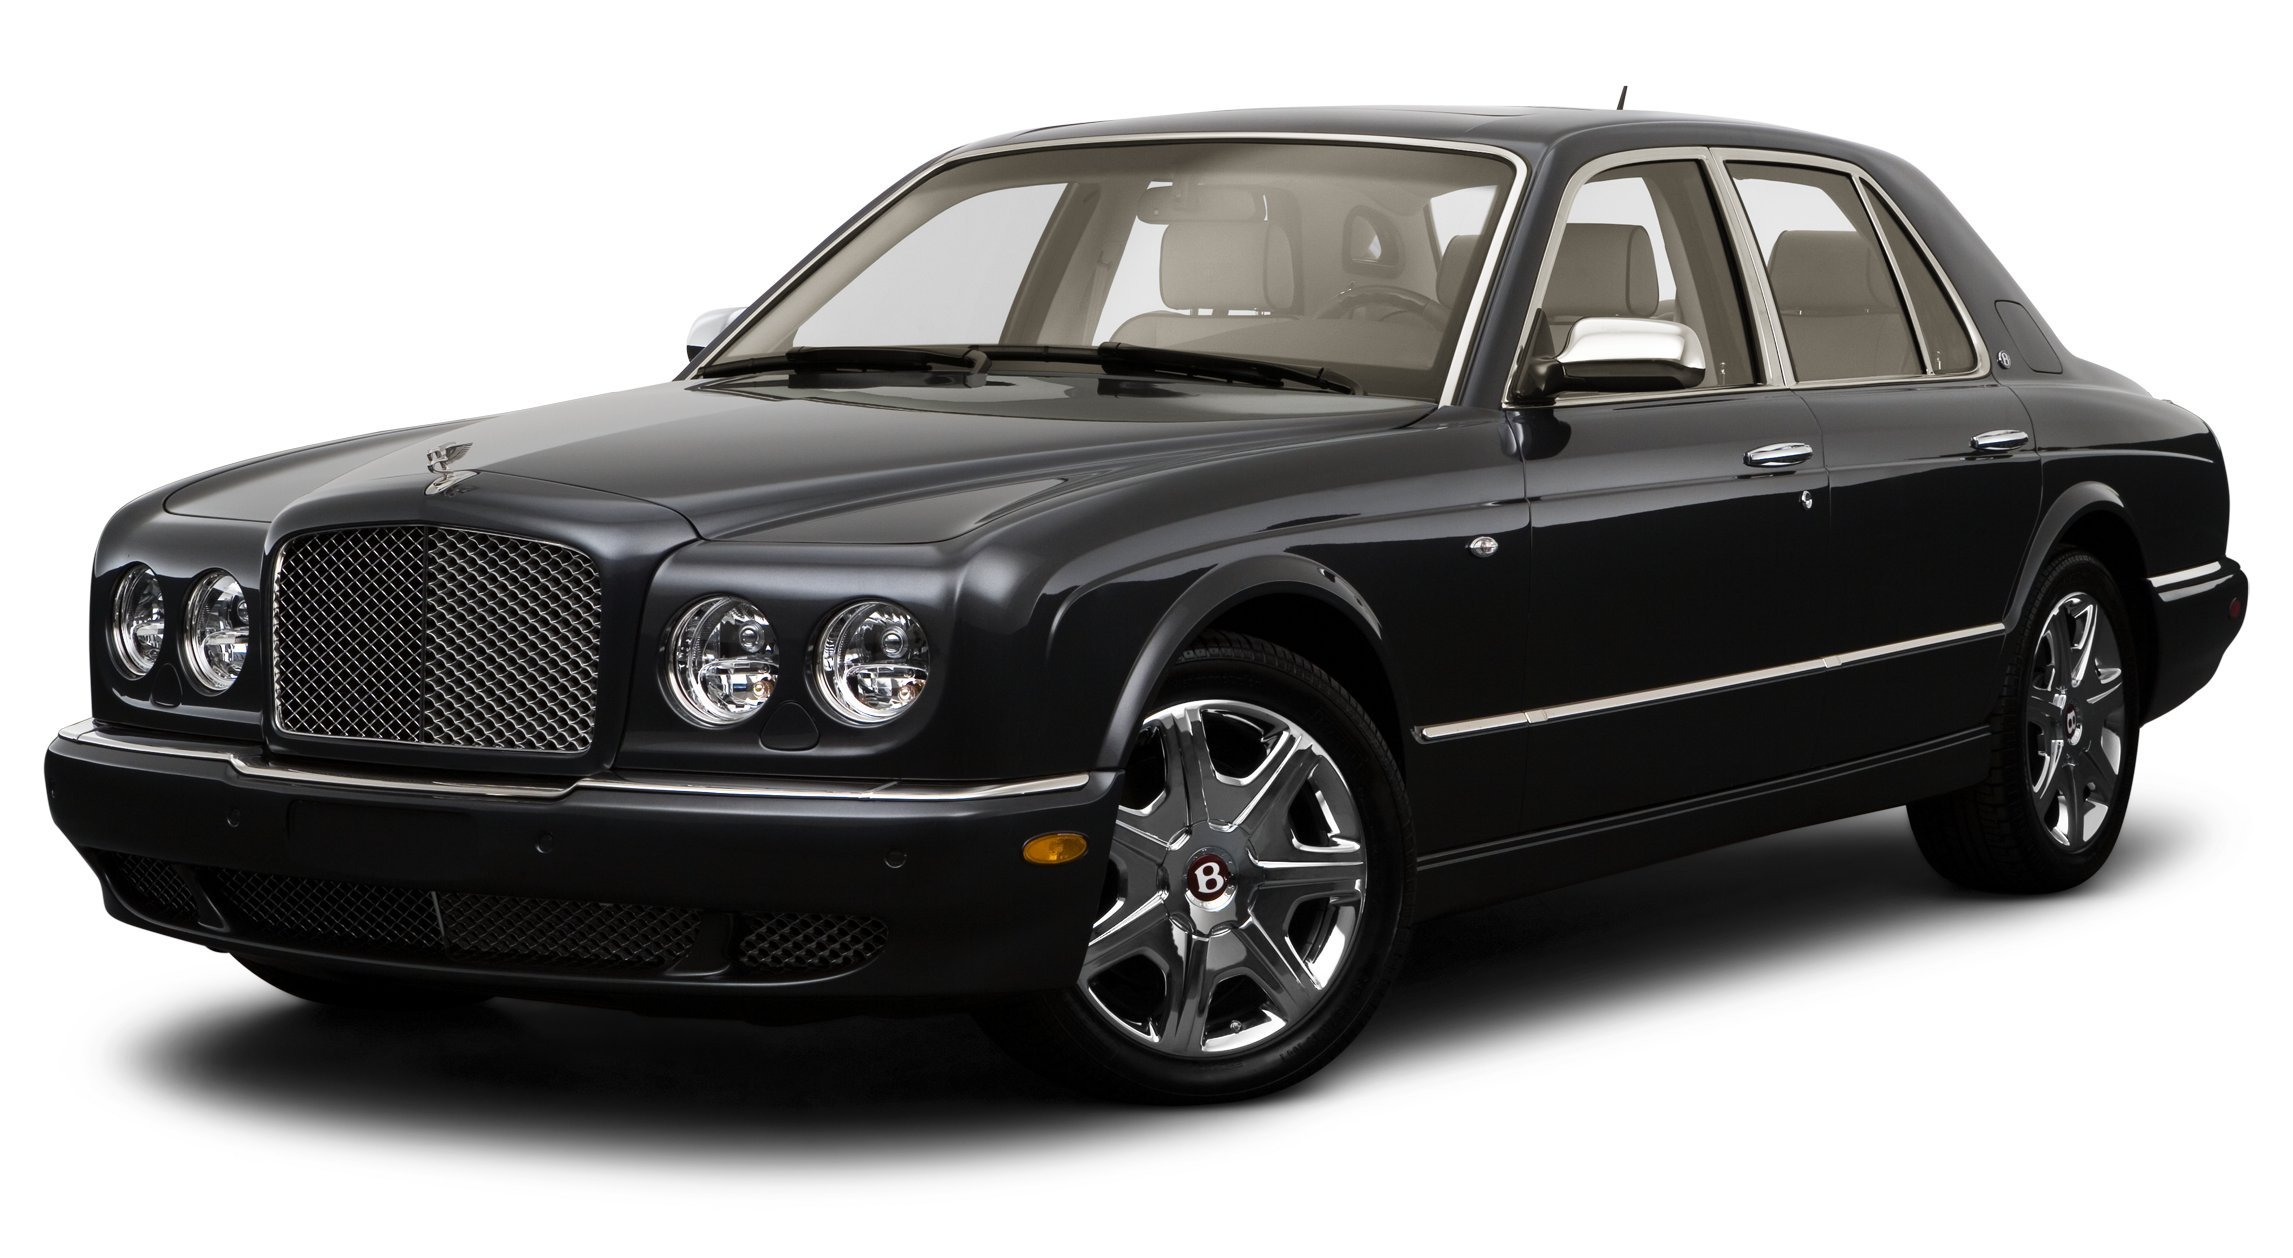 Amazon 2008 Rolls Royce Phantom Reviews and Specs